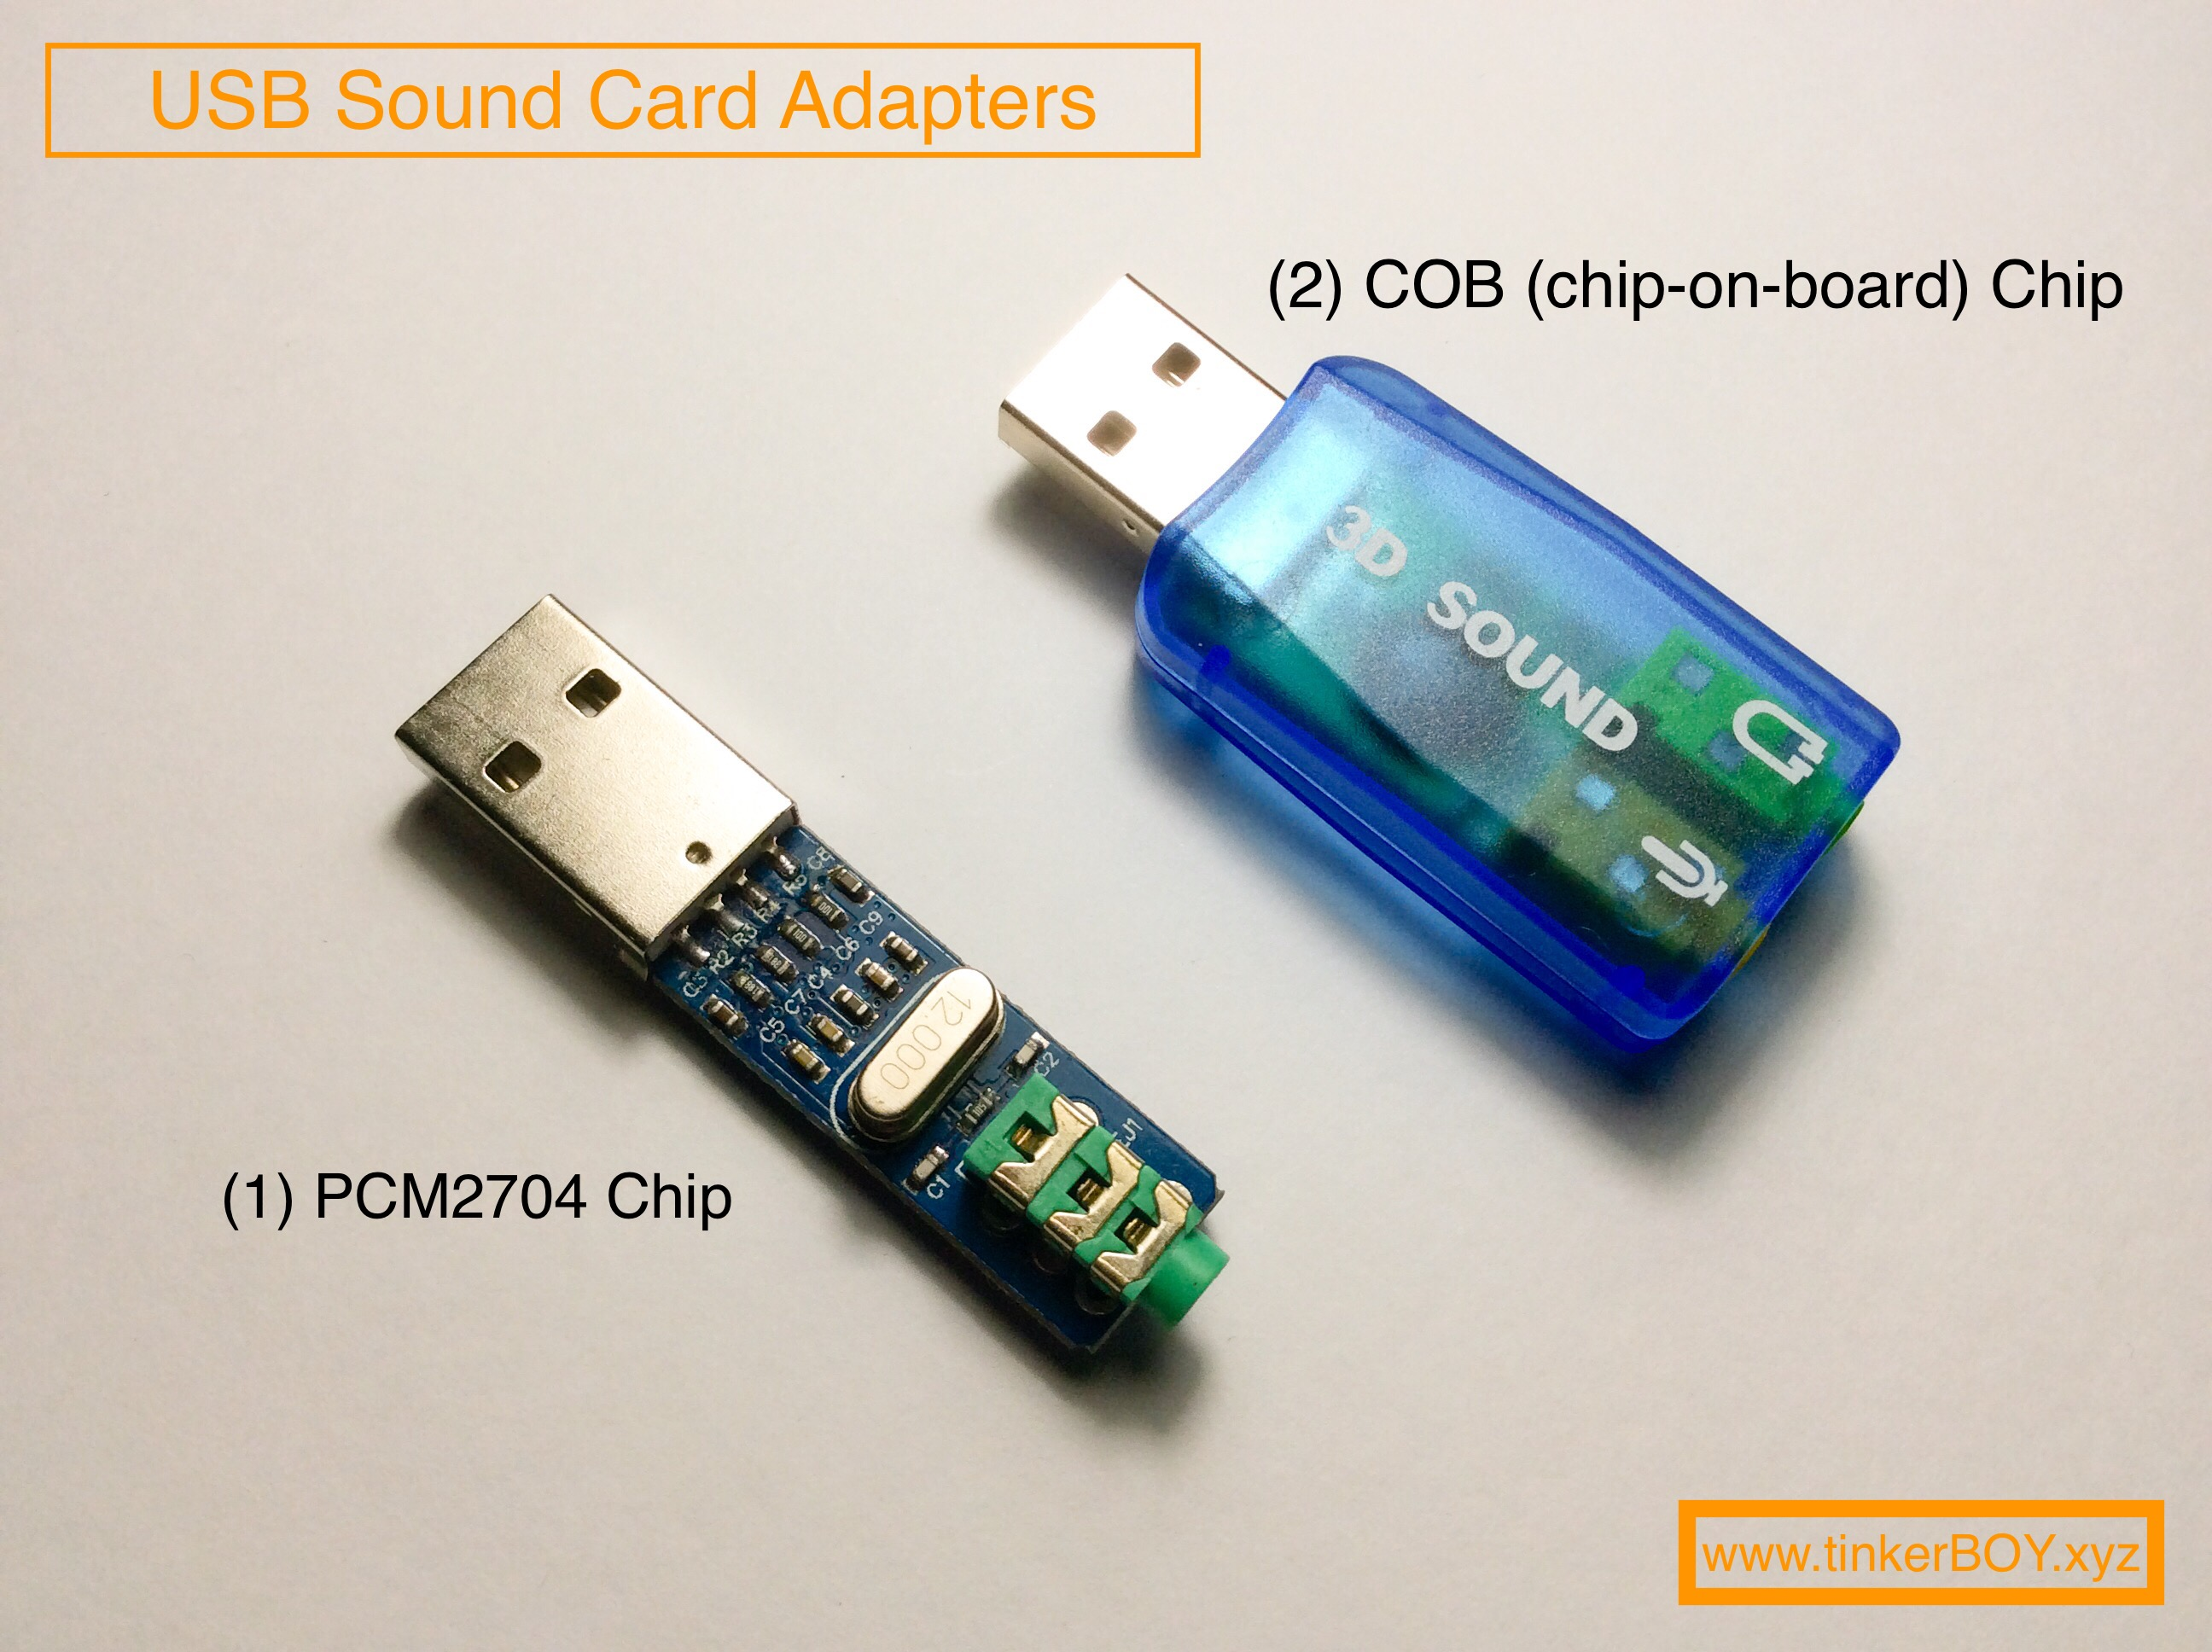 Pinout Diagrams for the PCM2704 and 3D Sound(COB) USB Sound Card Adapters -  tinkerBOY [ 1936 x 2592 Pixel ]